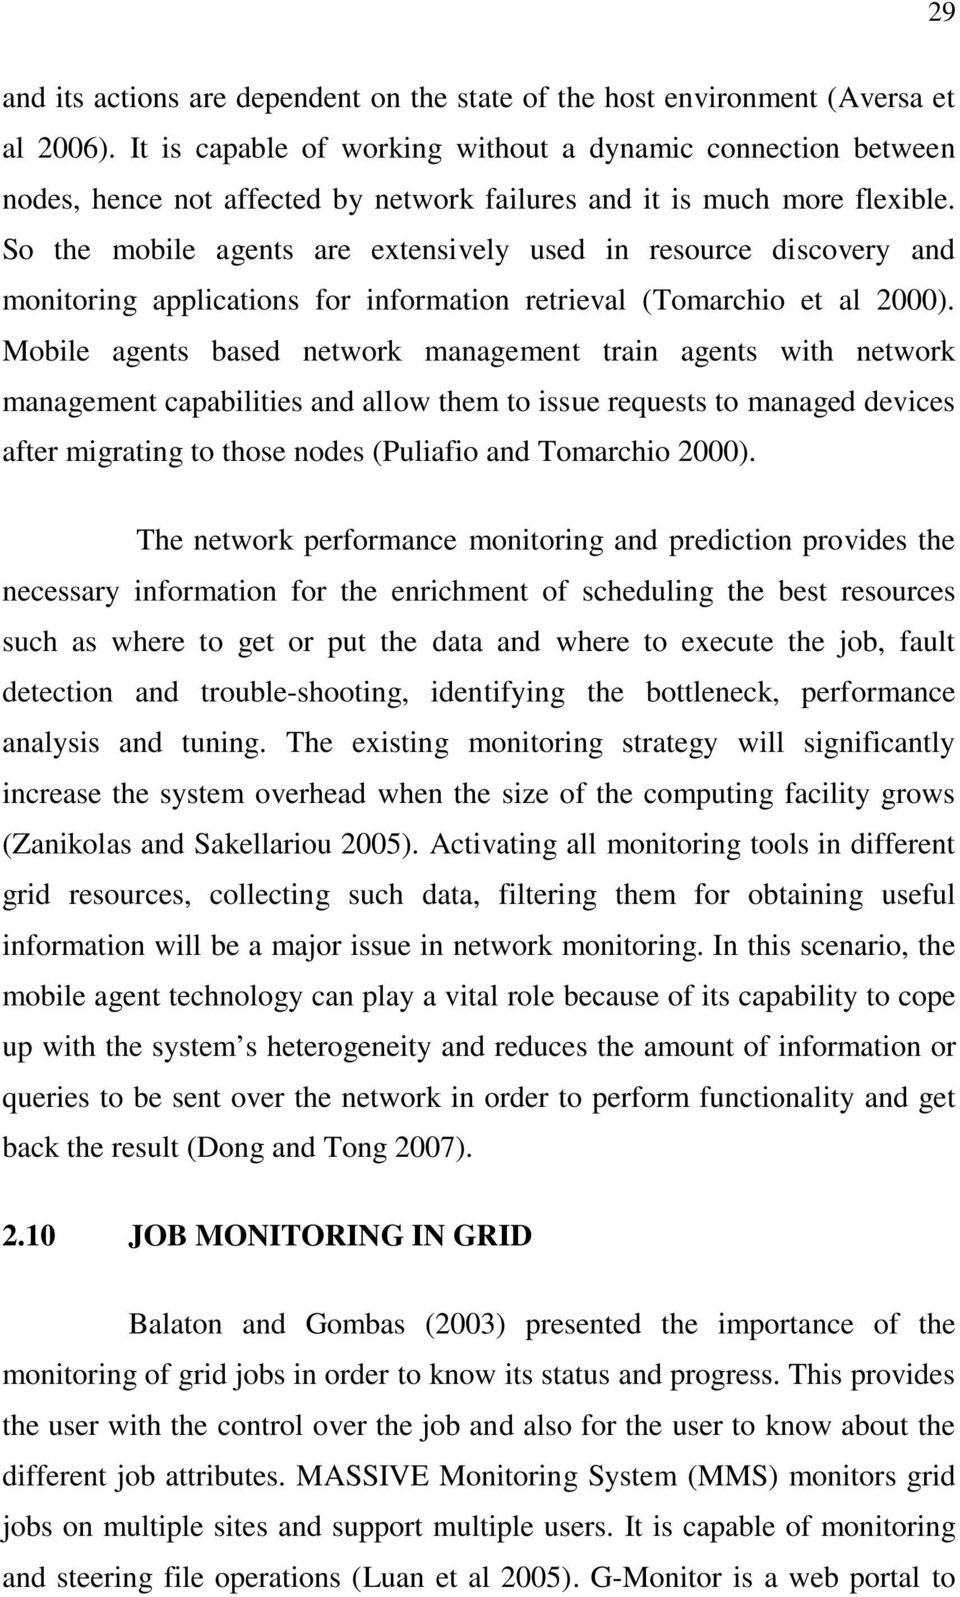 So the mobile agents are extensively used in resource discovery and monitoring applications for information retrieval (Tomarchio et al 2000).